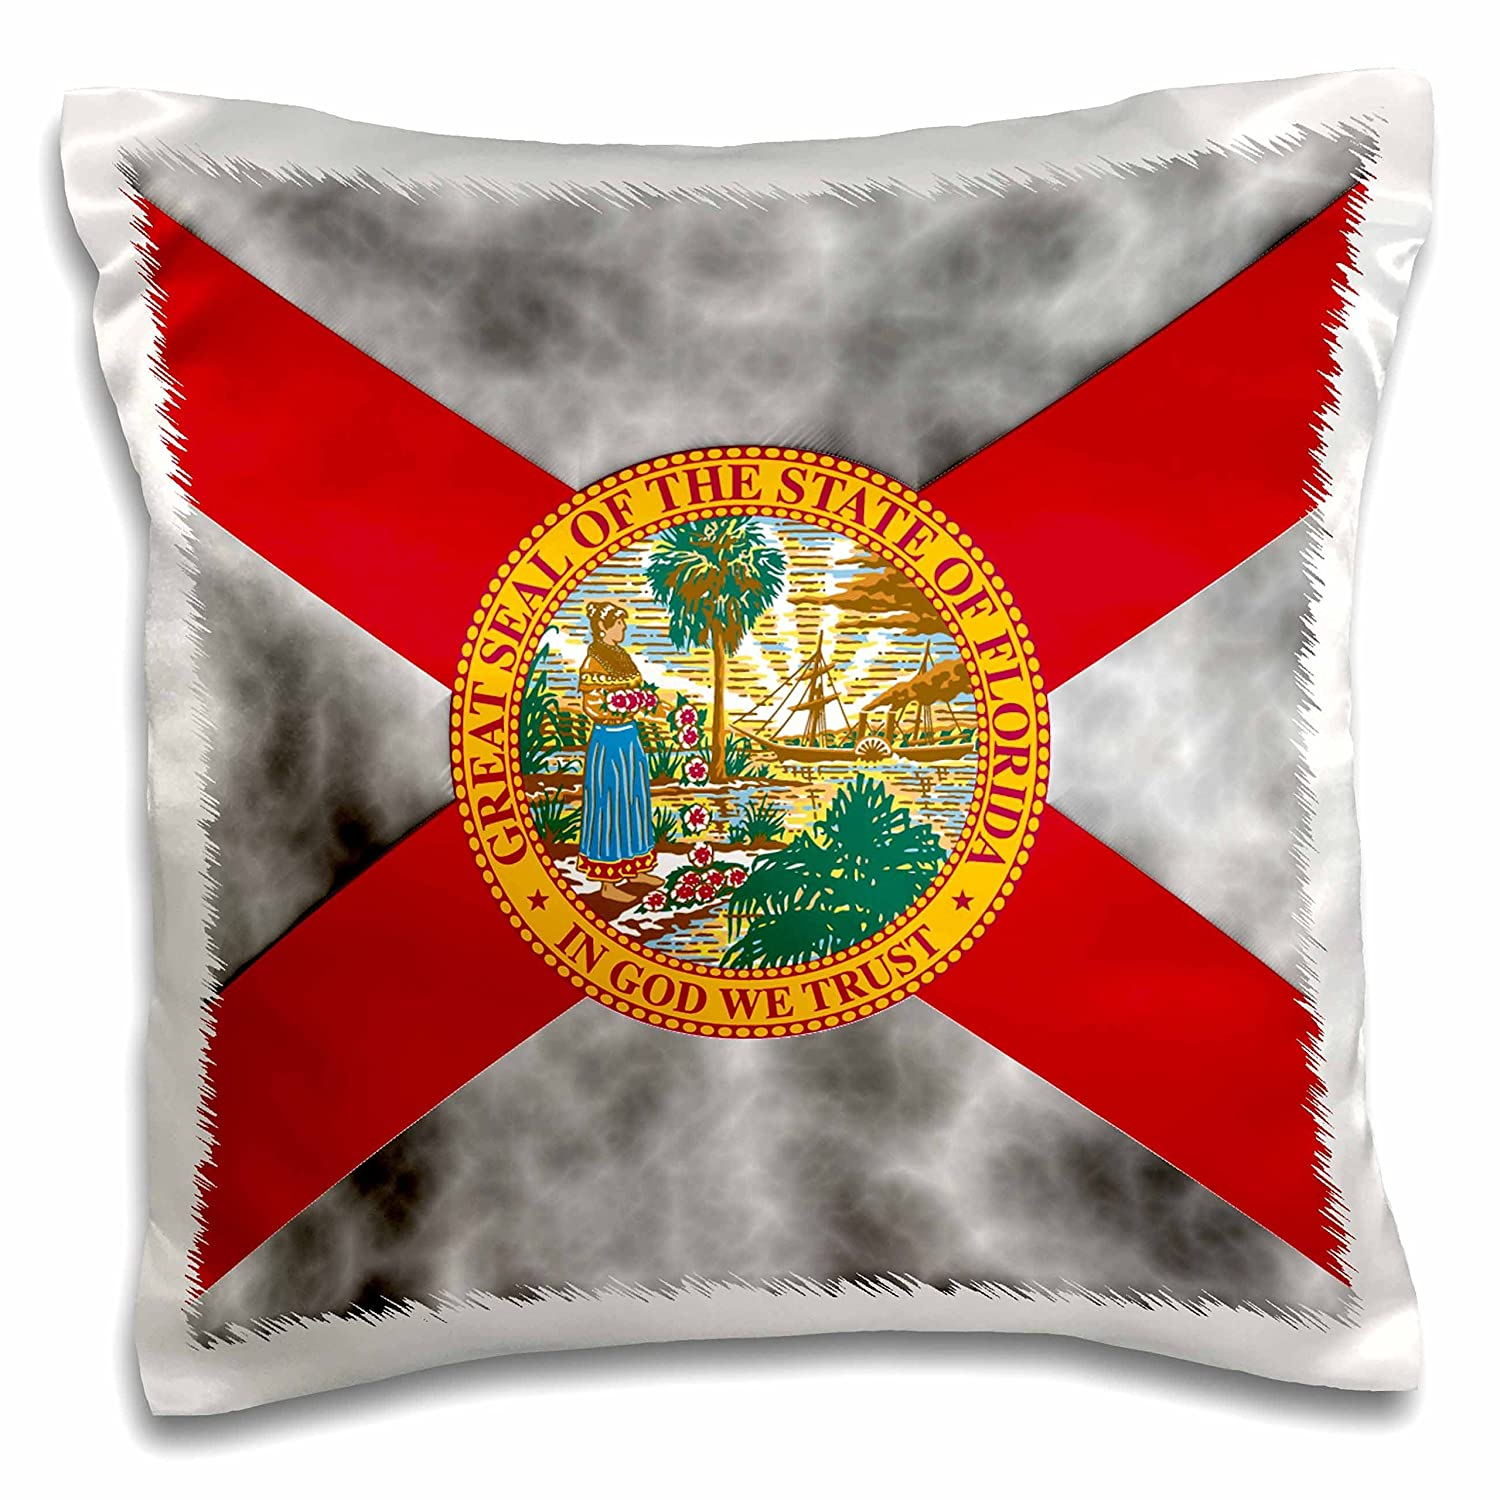 Buy 3d Rose Pc 127644 1 Florida State Flag Pillow Case 16 X 16 Online At Low Prices In India Amazon In